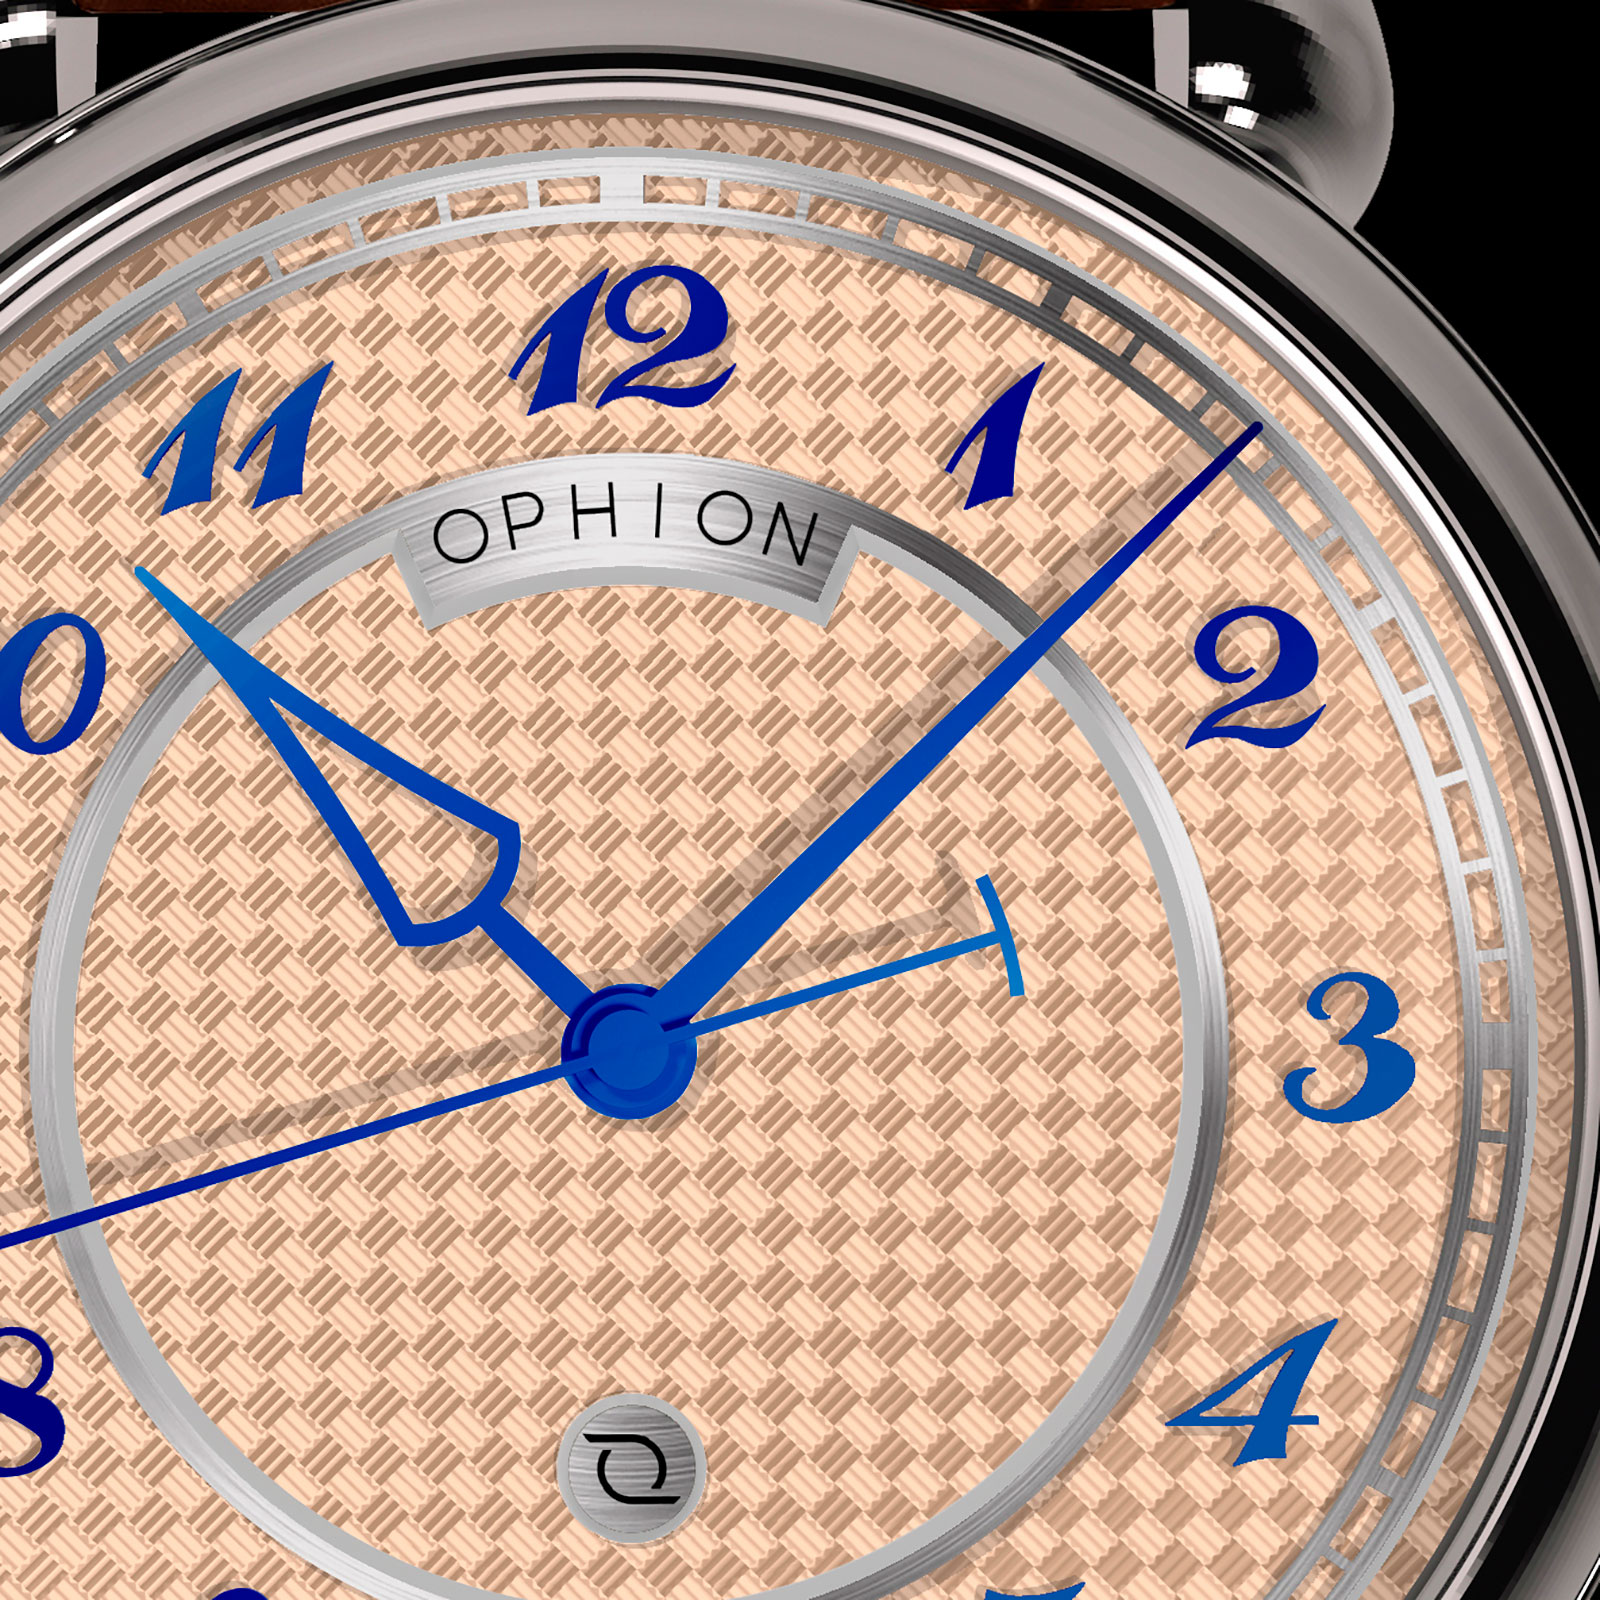 ophion velos watch 4